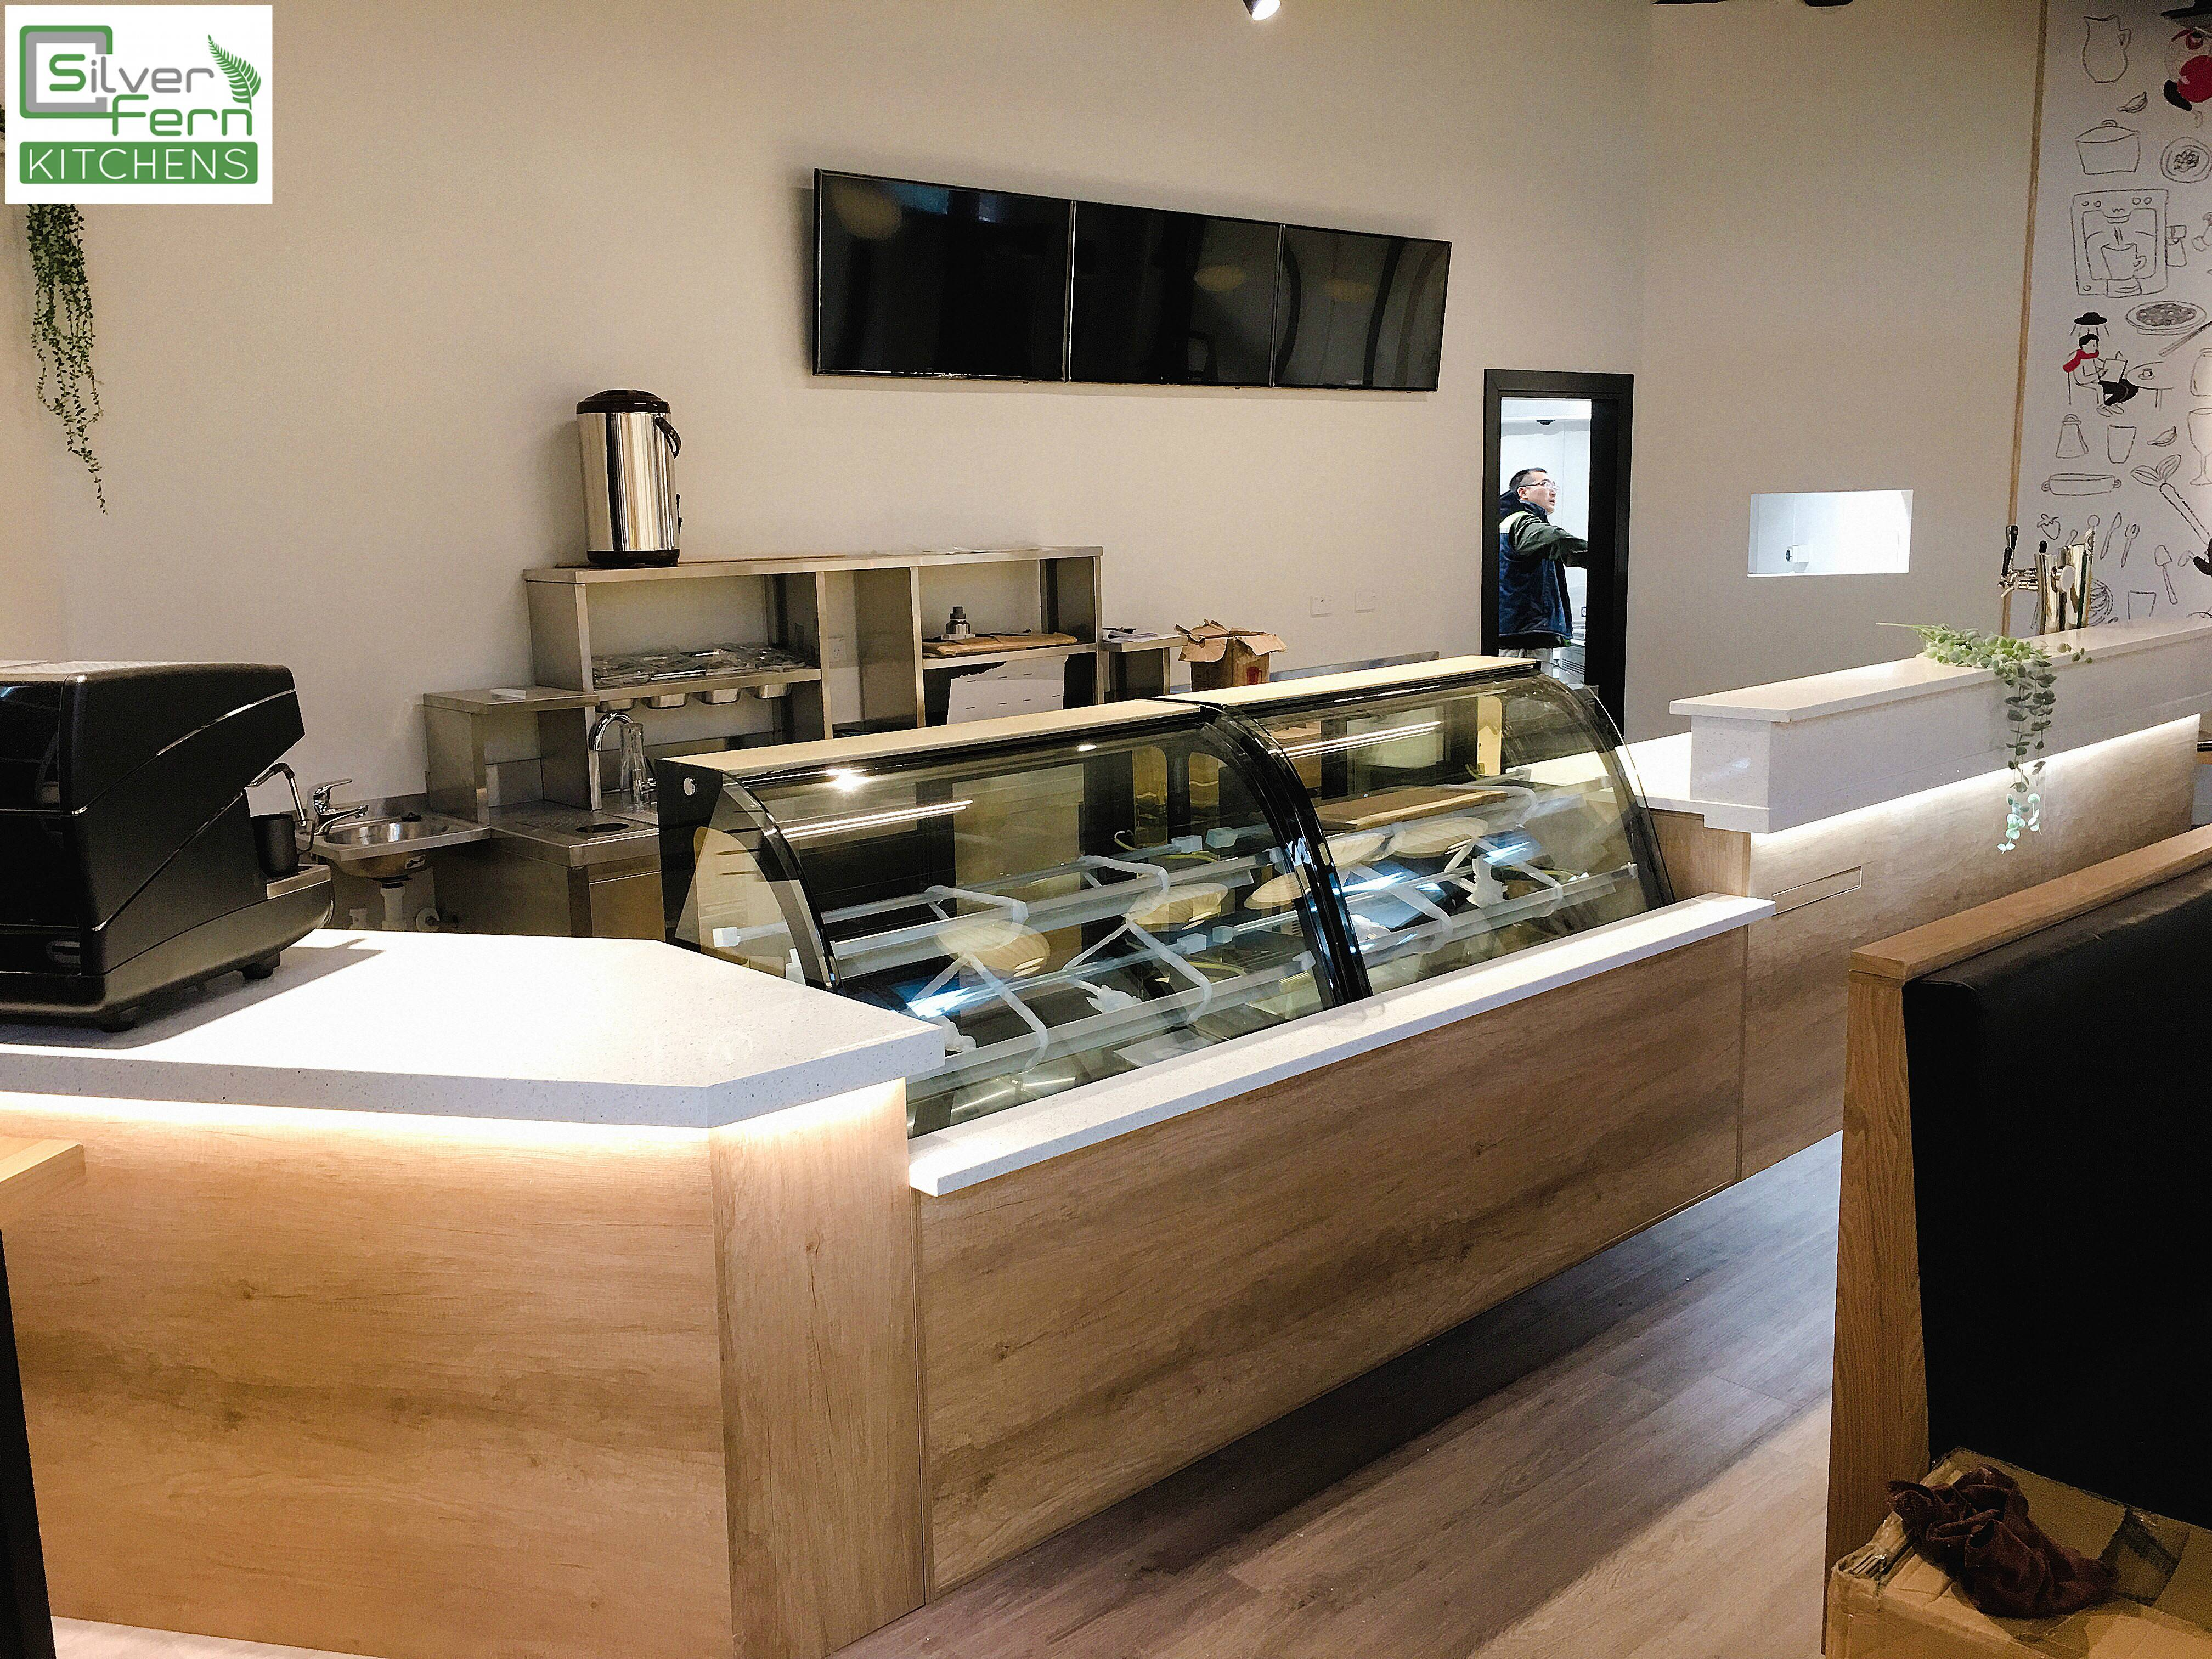 New Counter in City